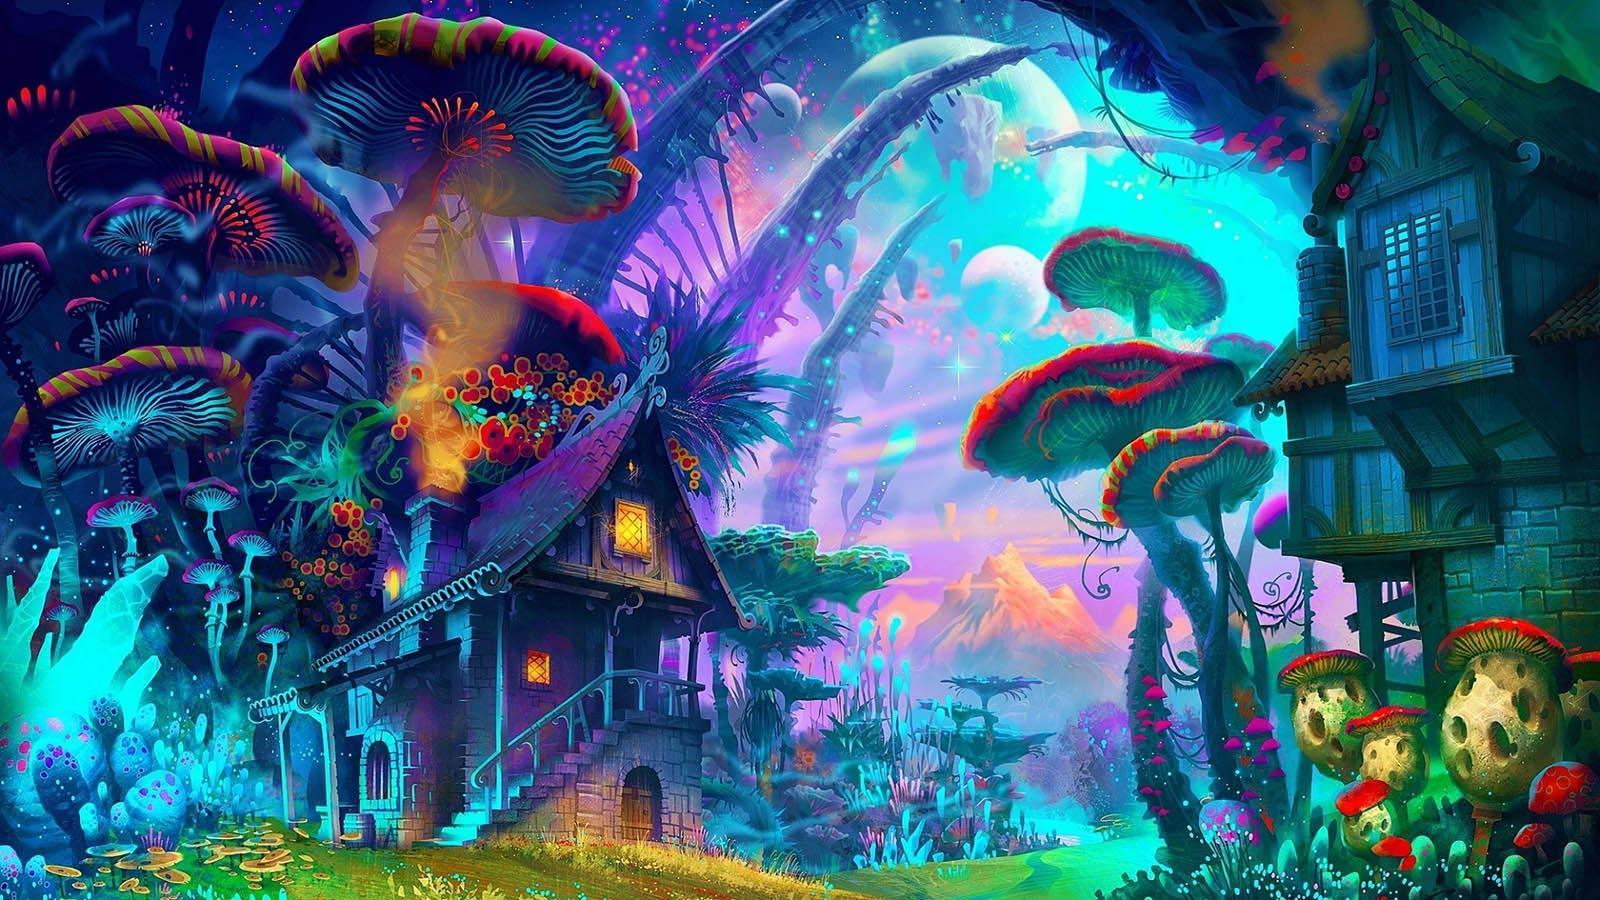 Psychedelic Wallpaper 4k Ultra Hd For Android Apk Download